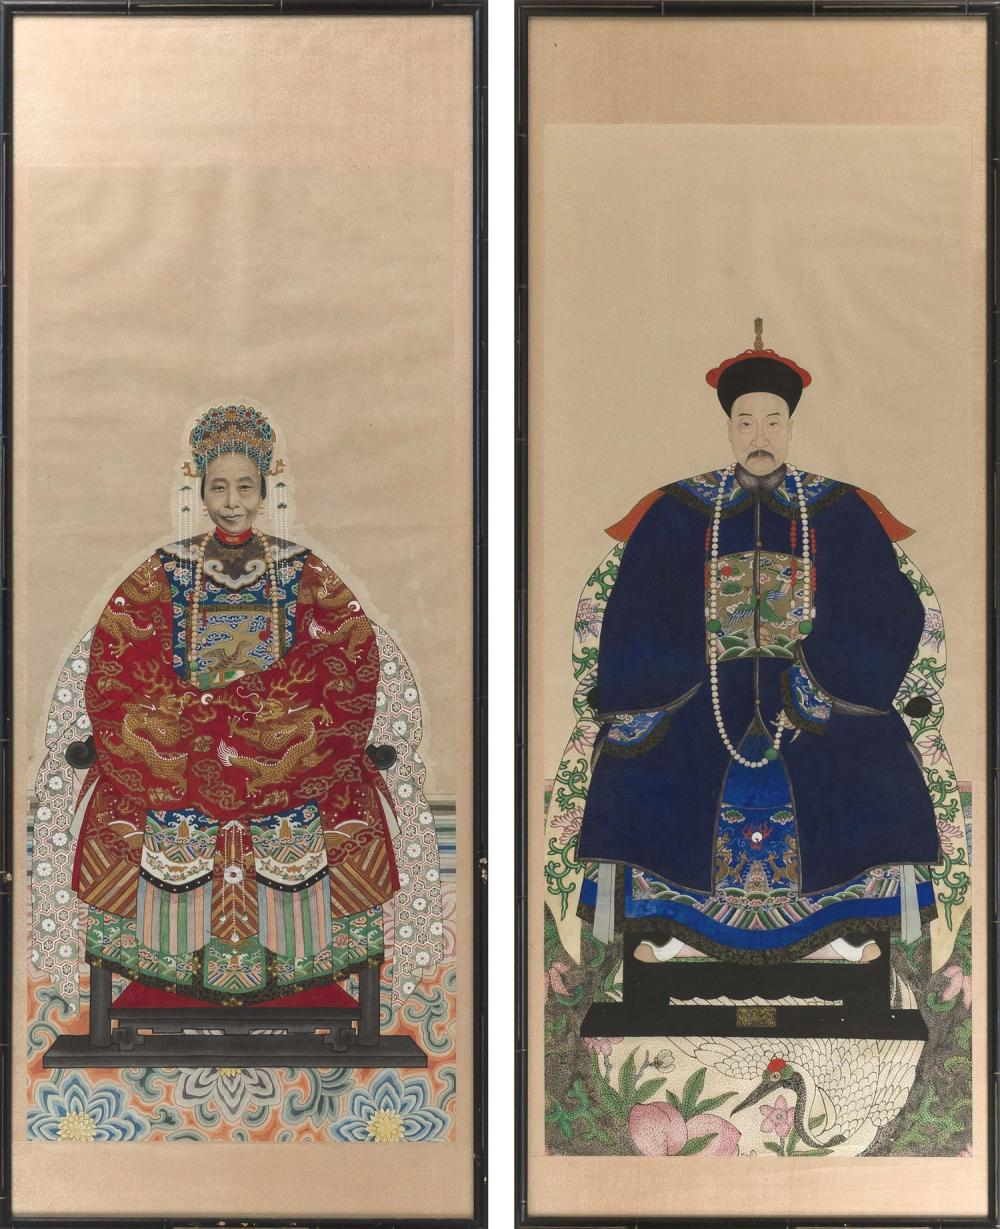 TWO CHINESE ANCESTRAL PORTRAITS ON PAPER Depicting a Mandarin and his wife, both seated on altar chairs, with a crane and peaches be...